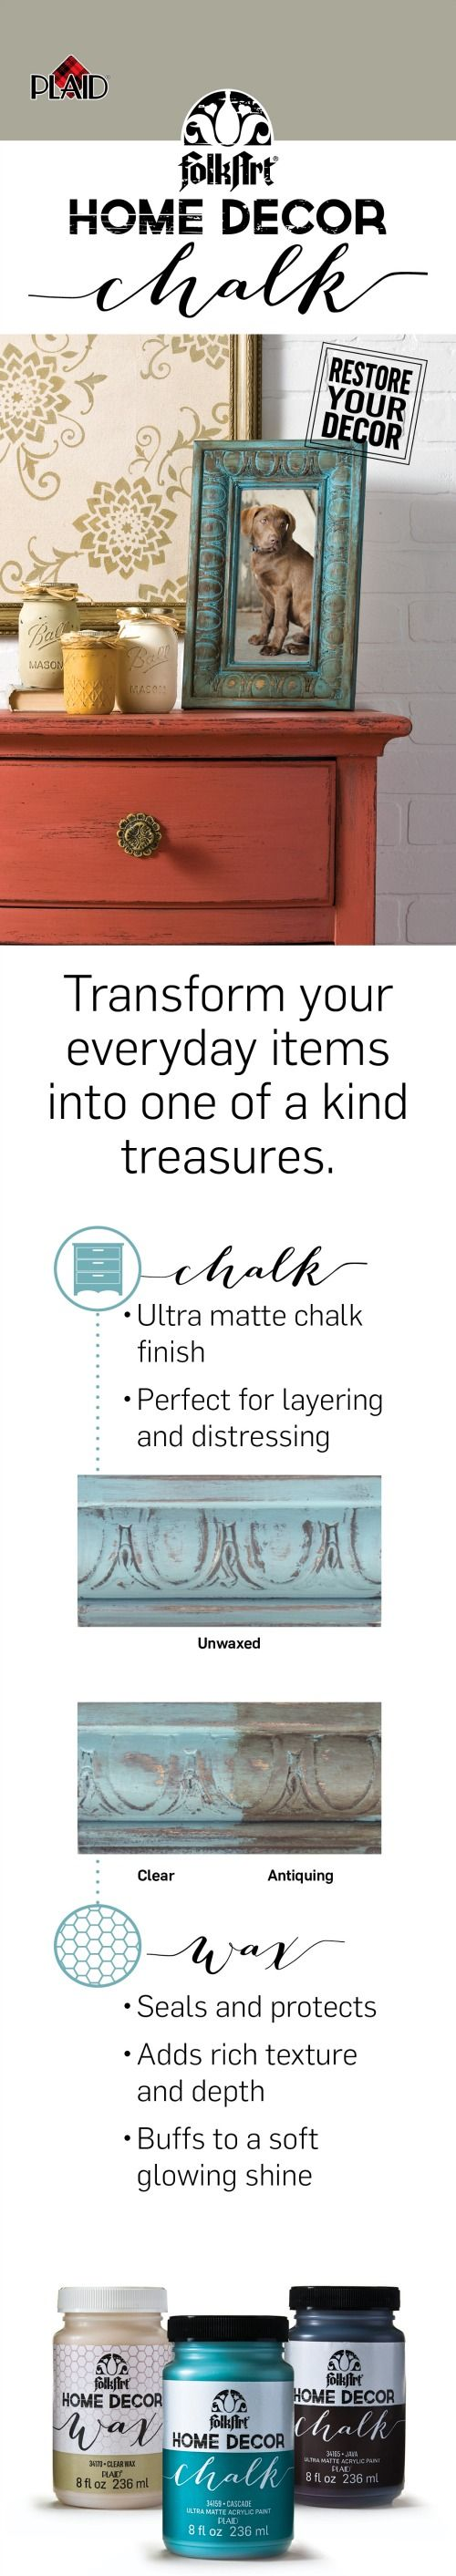 folkart home dcor chalk furniture and craft paint i love this - Home Decor Chalk Paint